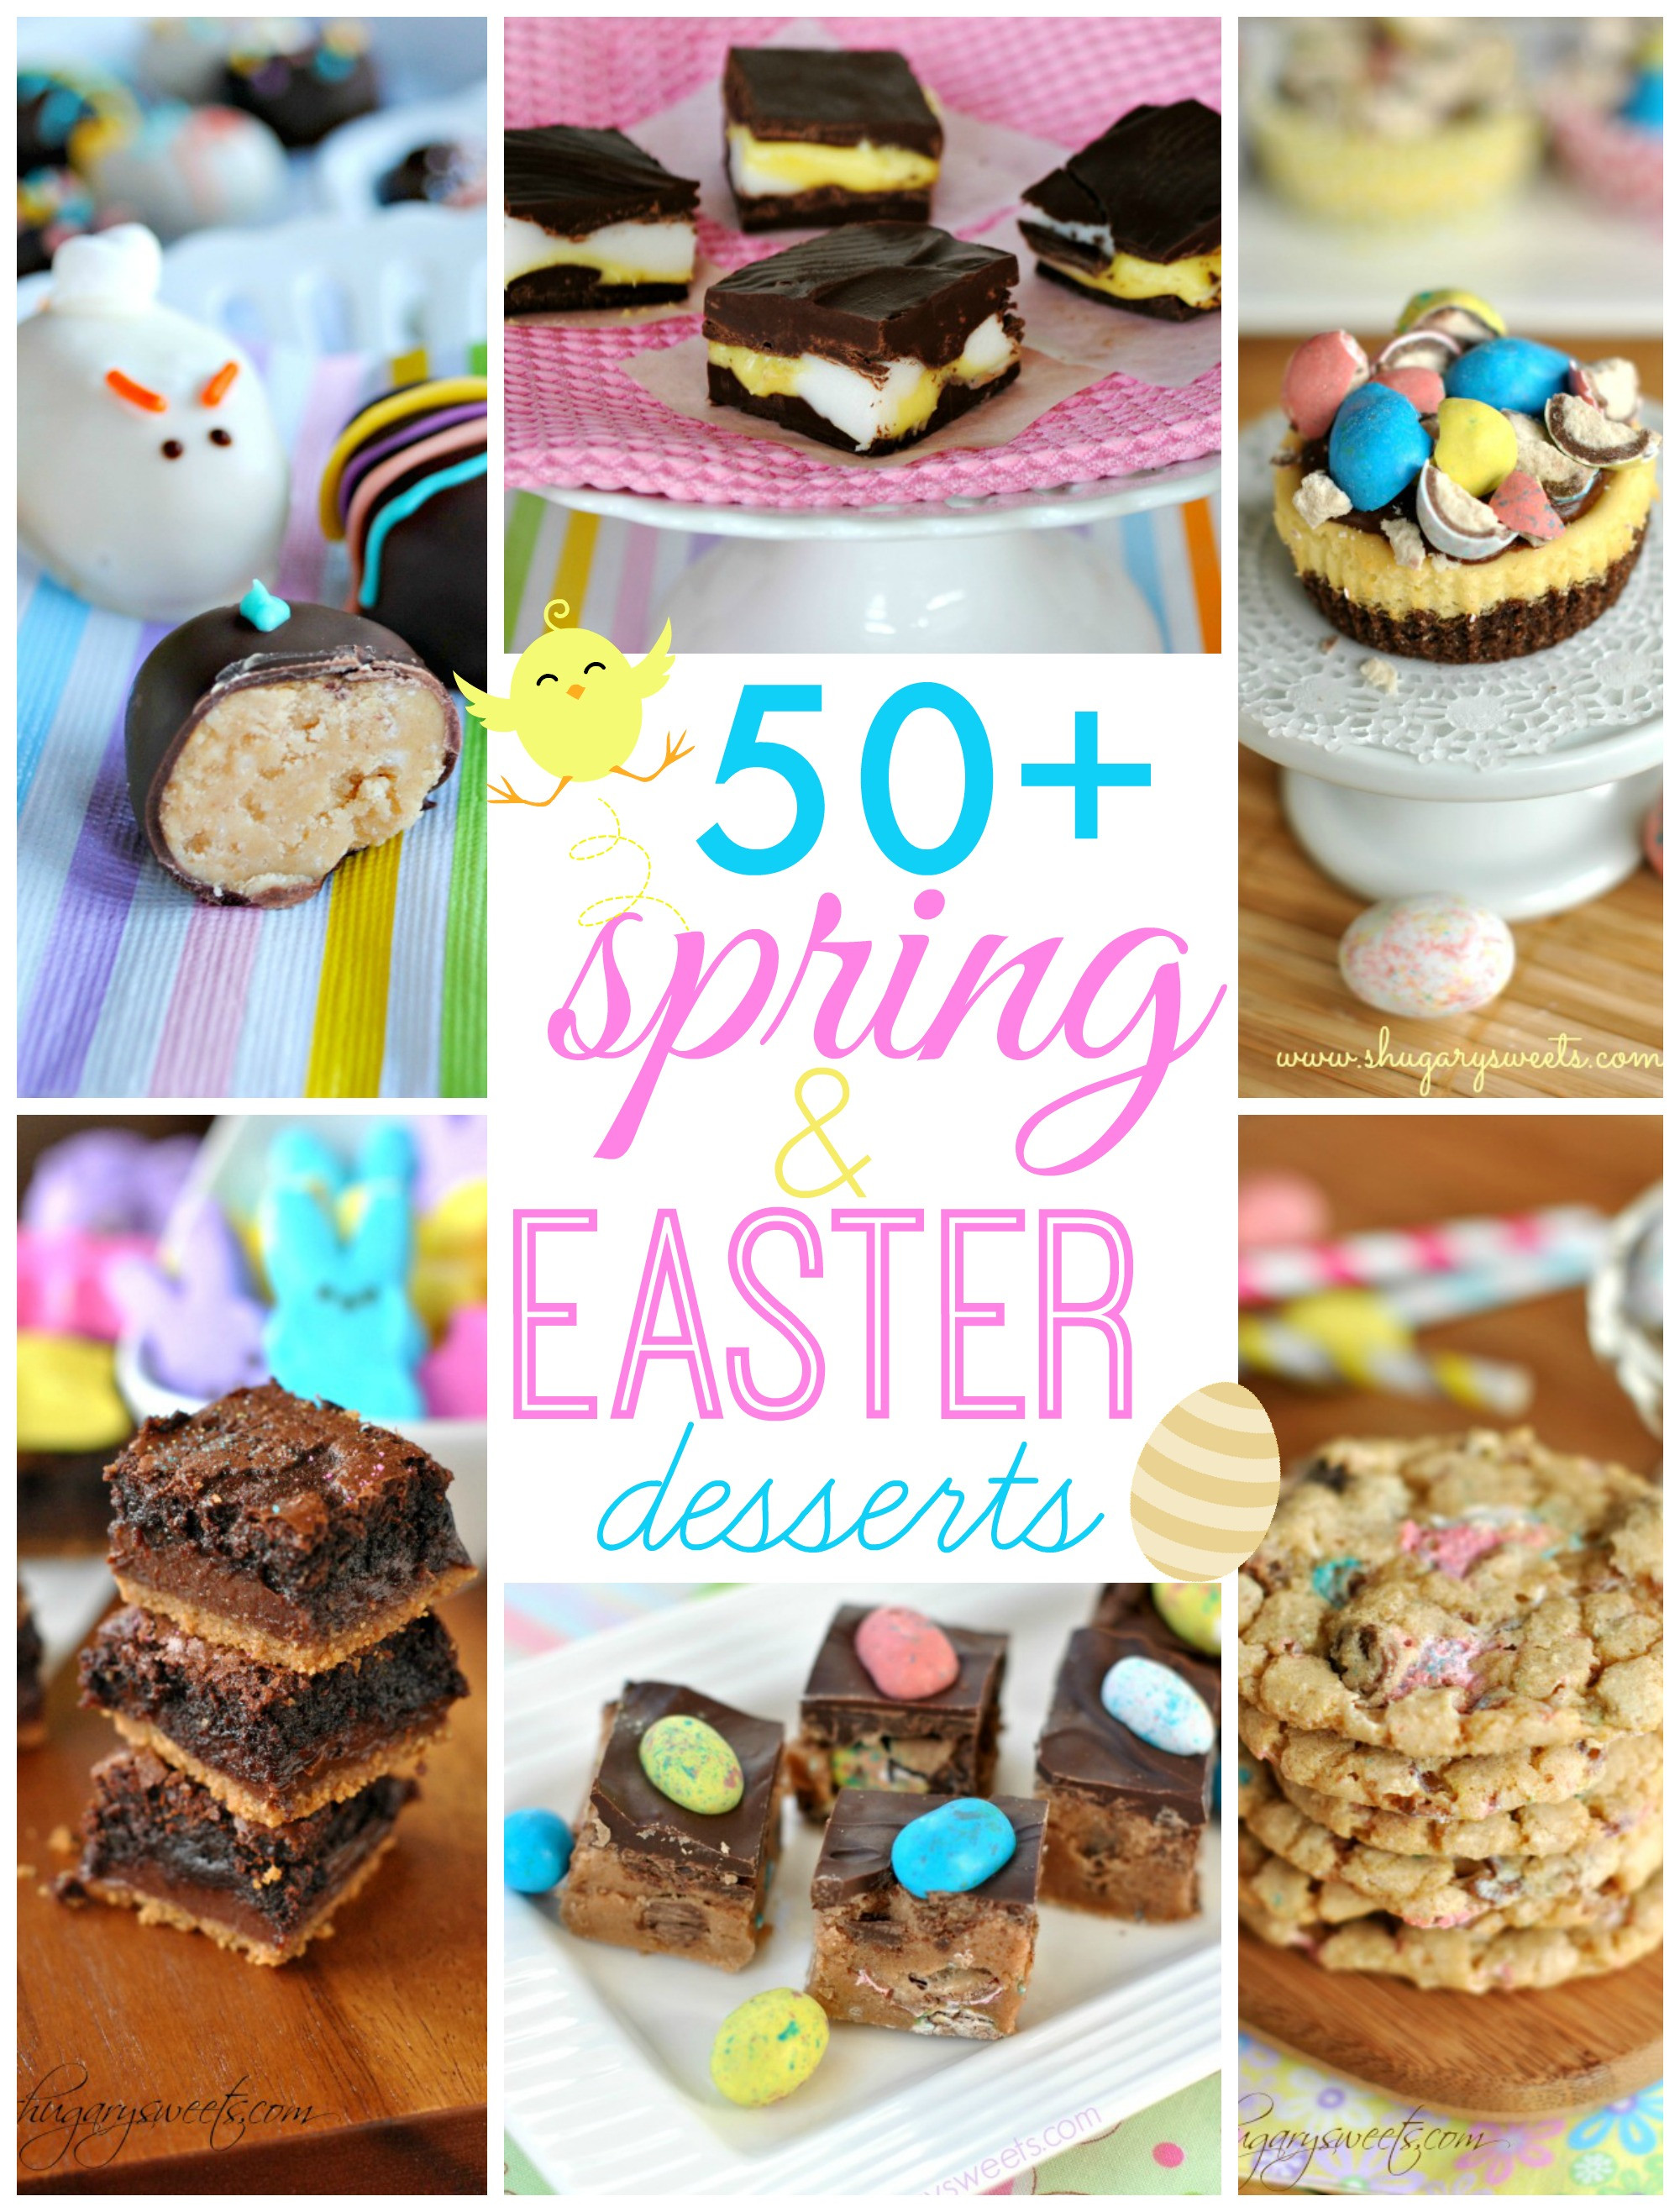 Easter Desserts Ideas  50 Easter Desserts Shugary Sweets